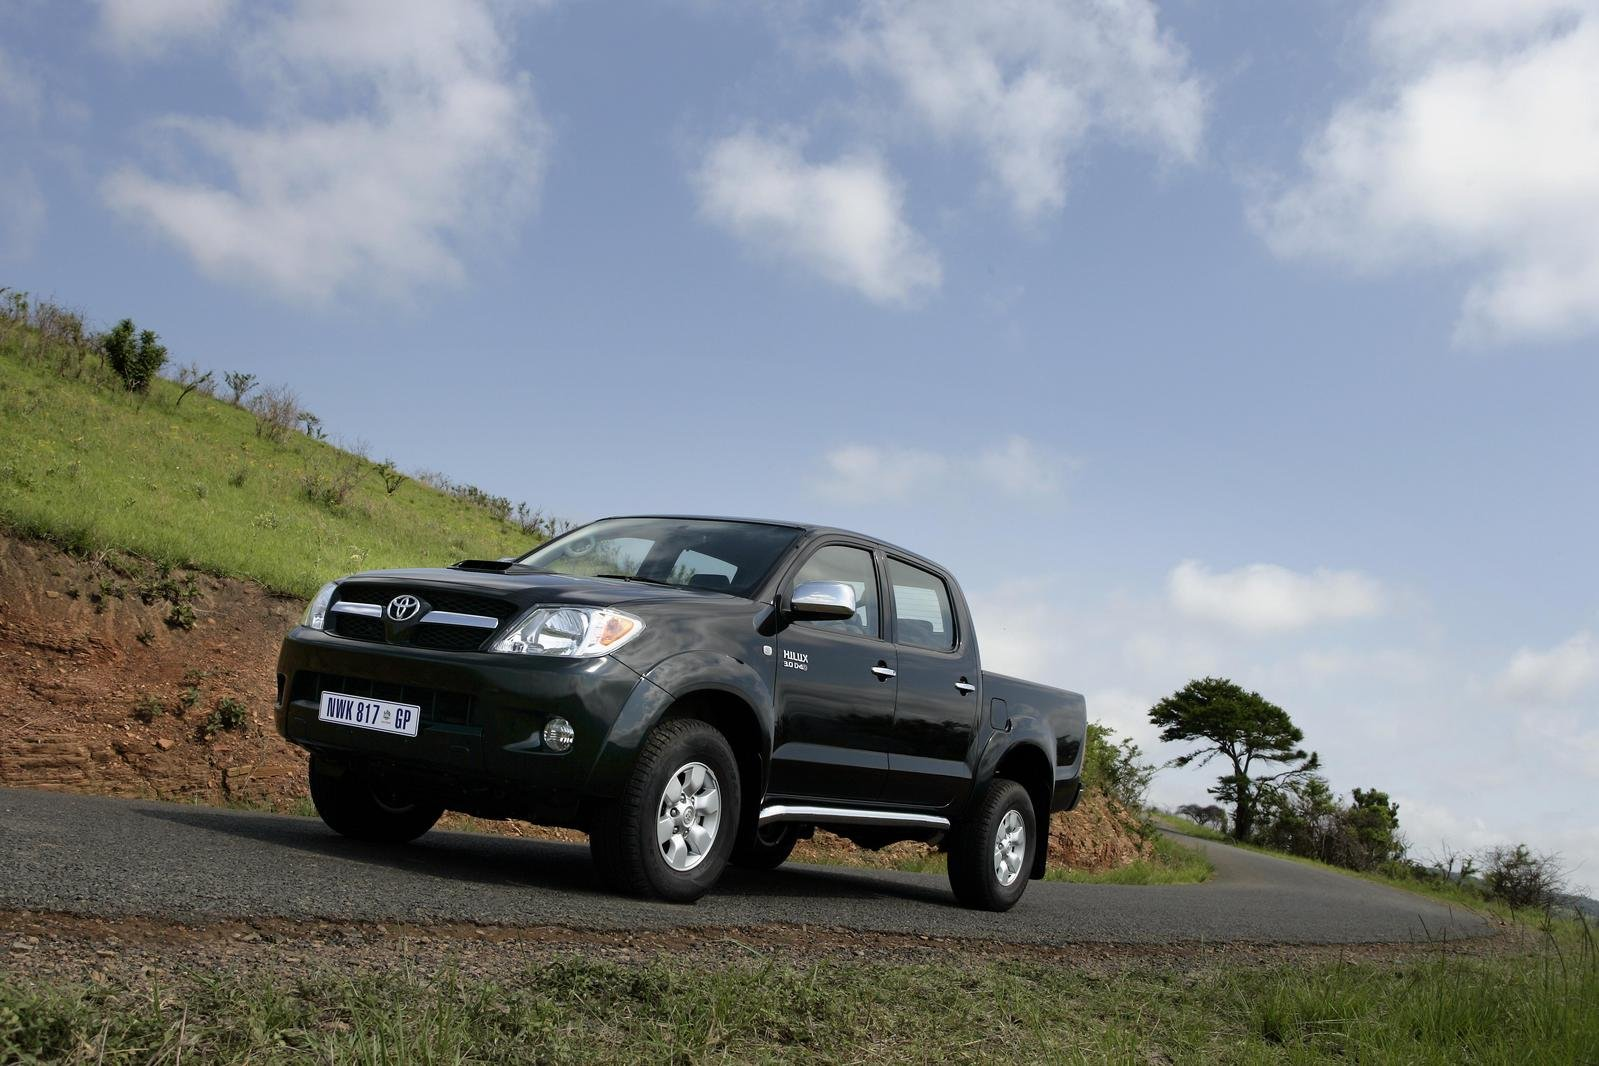 2007 toyota hilux picture 158007 car review top speed. Black Bedroom Furniture Sets. Home Design Ideas